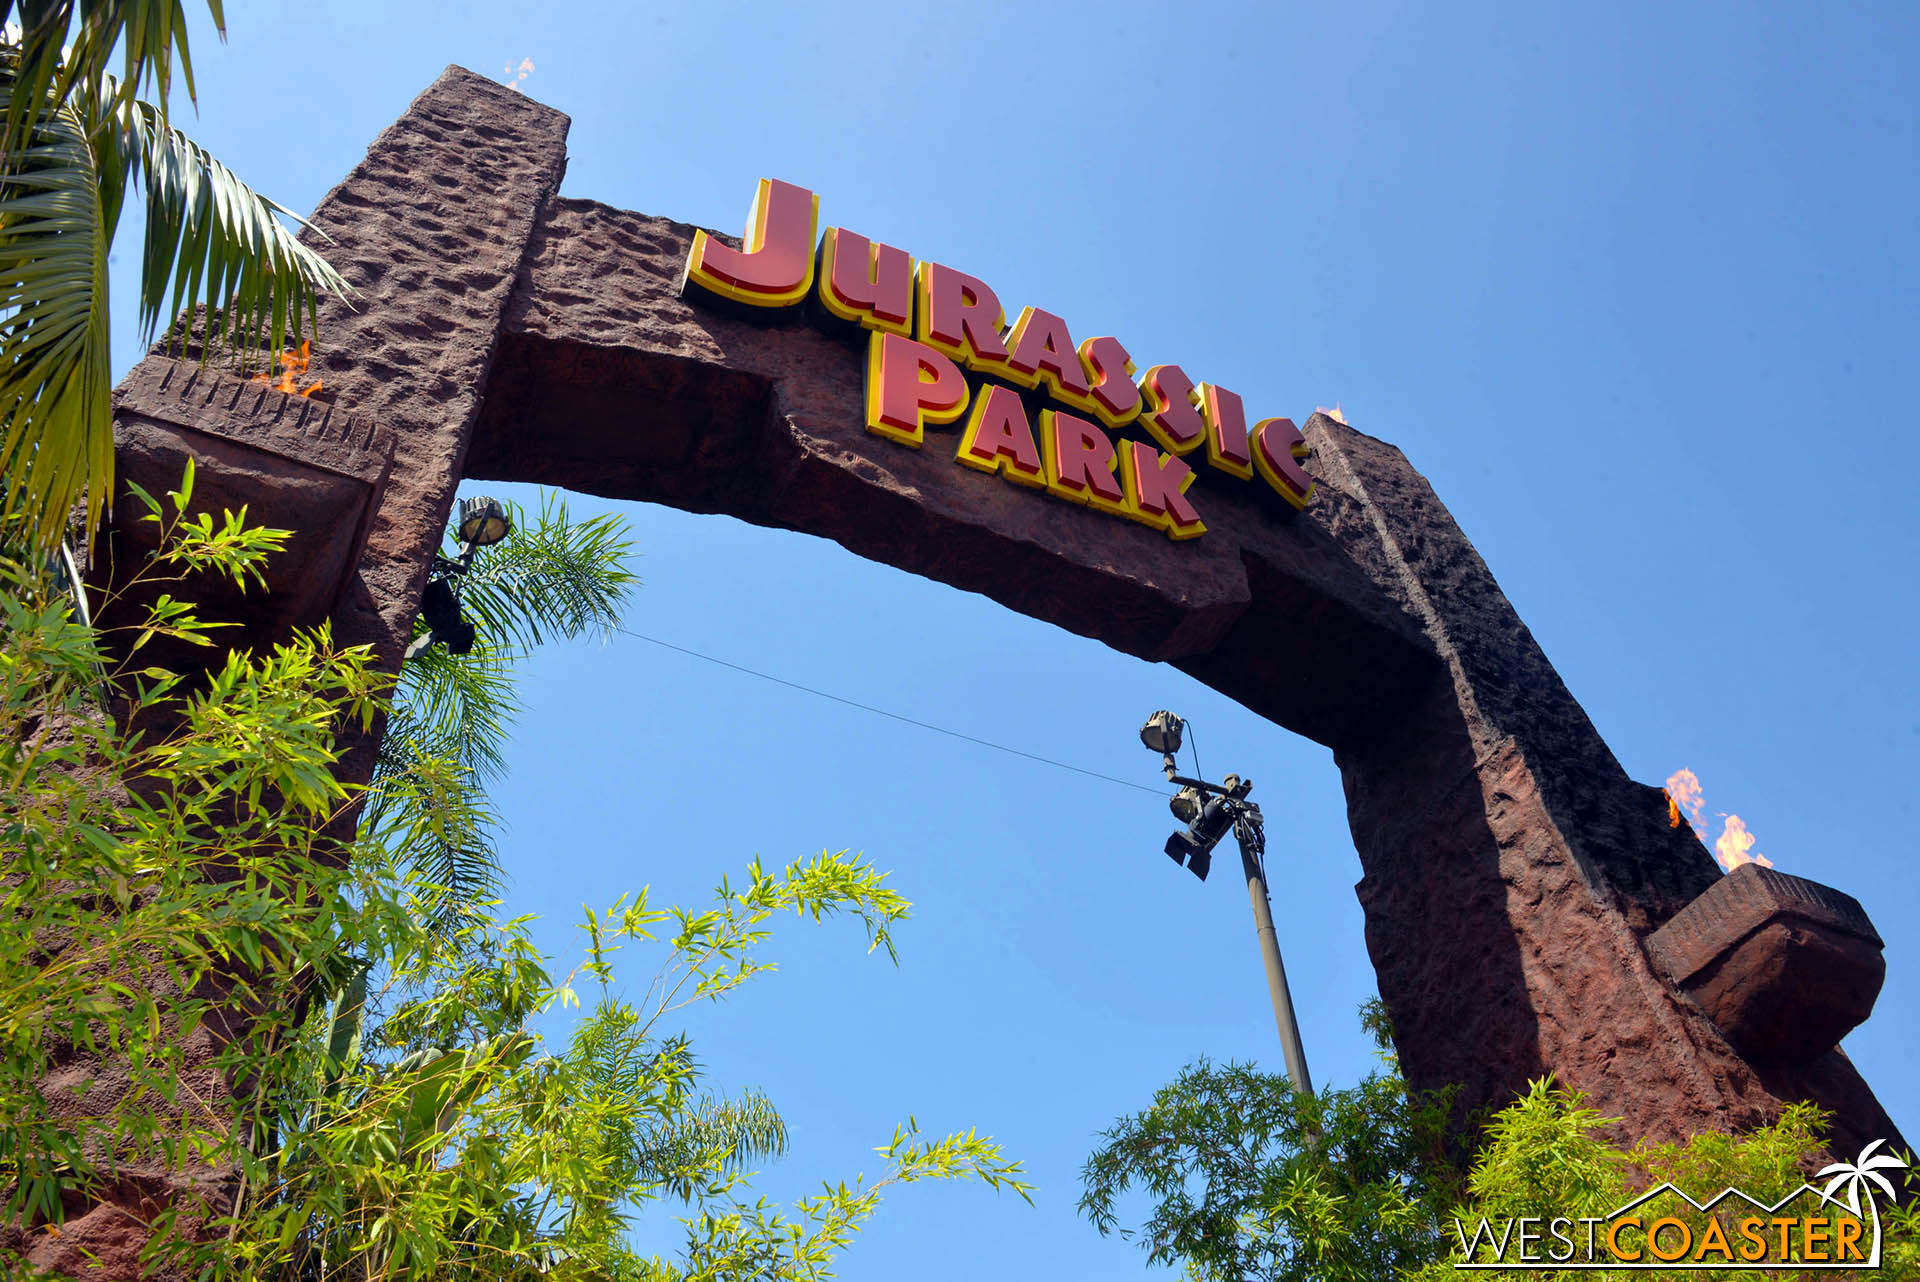 Walking under the iconic sign was definitely exciting and trepidatious for many a JP fan.